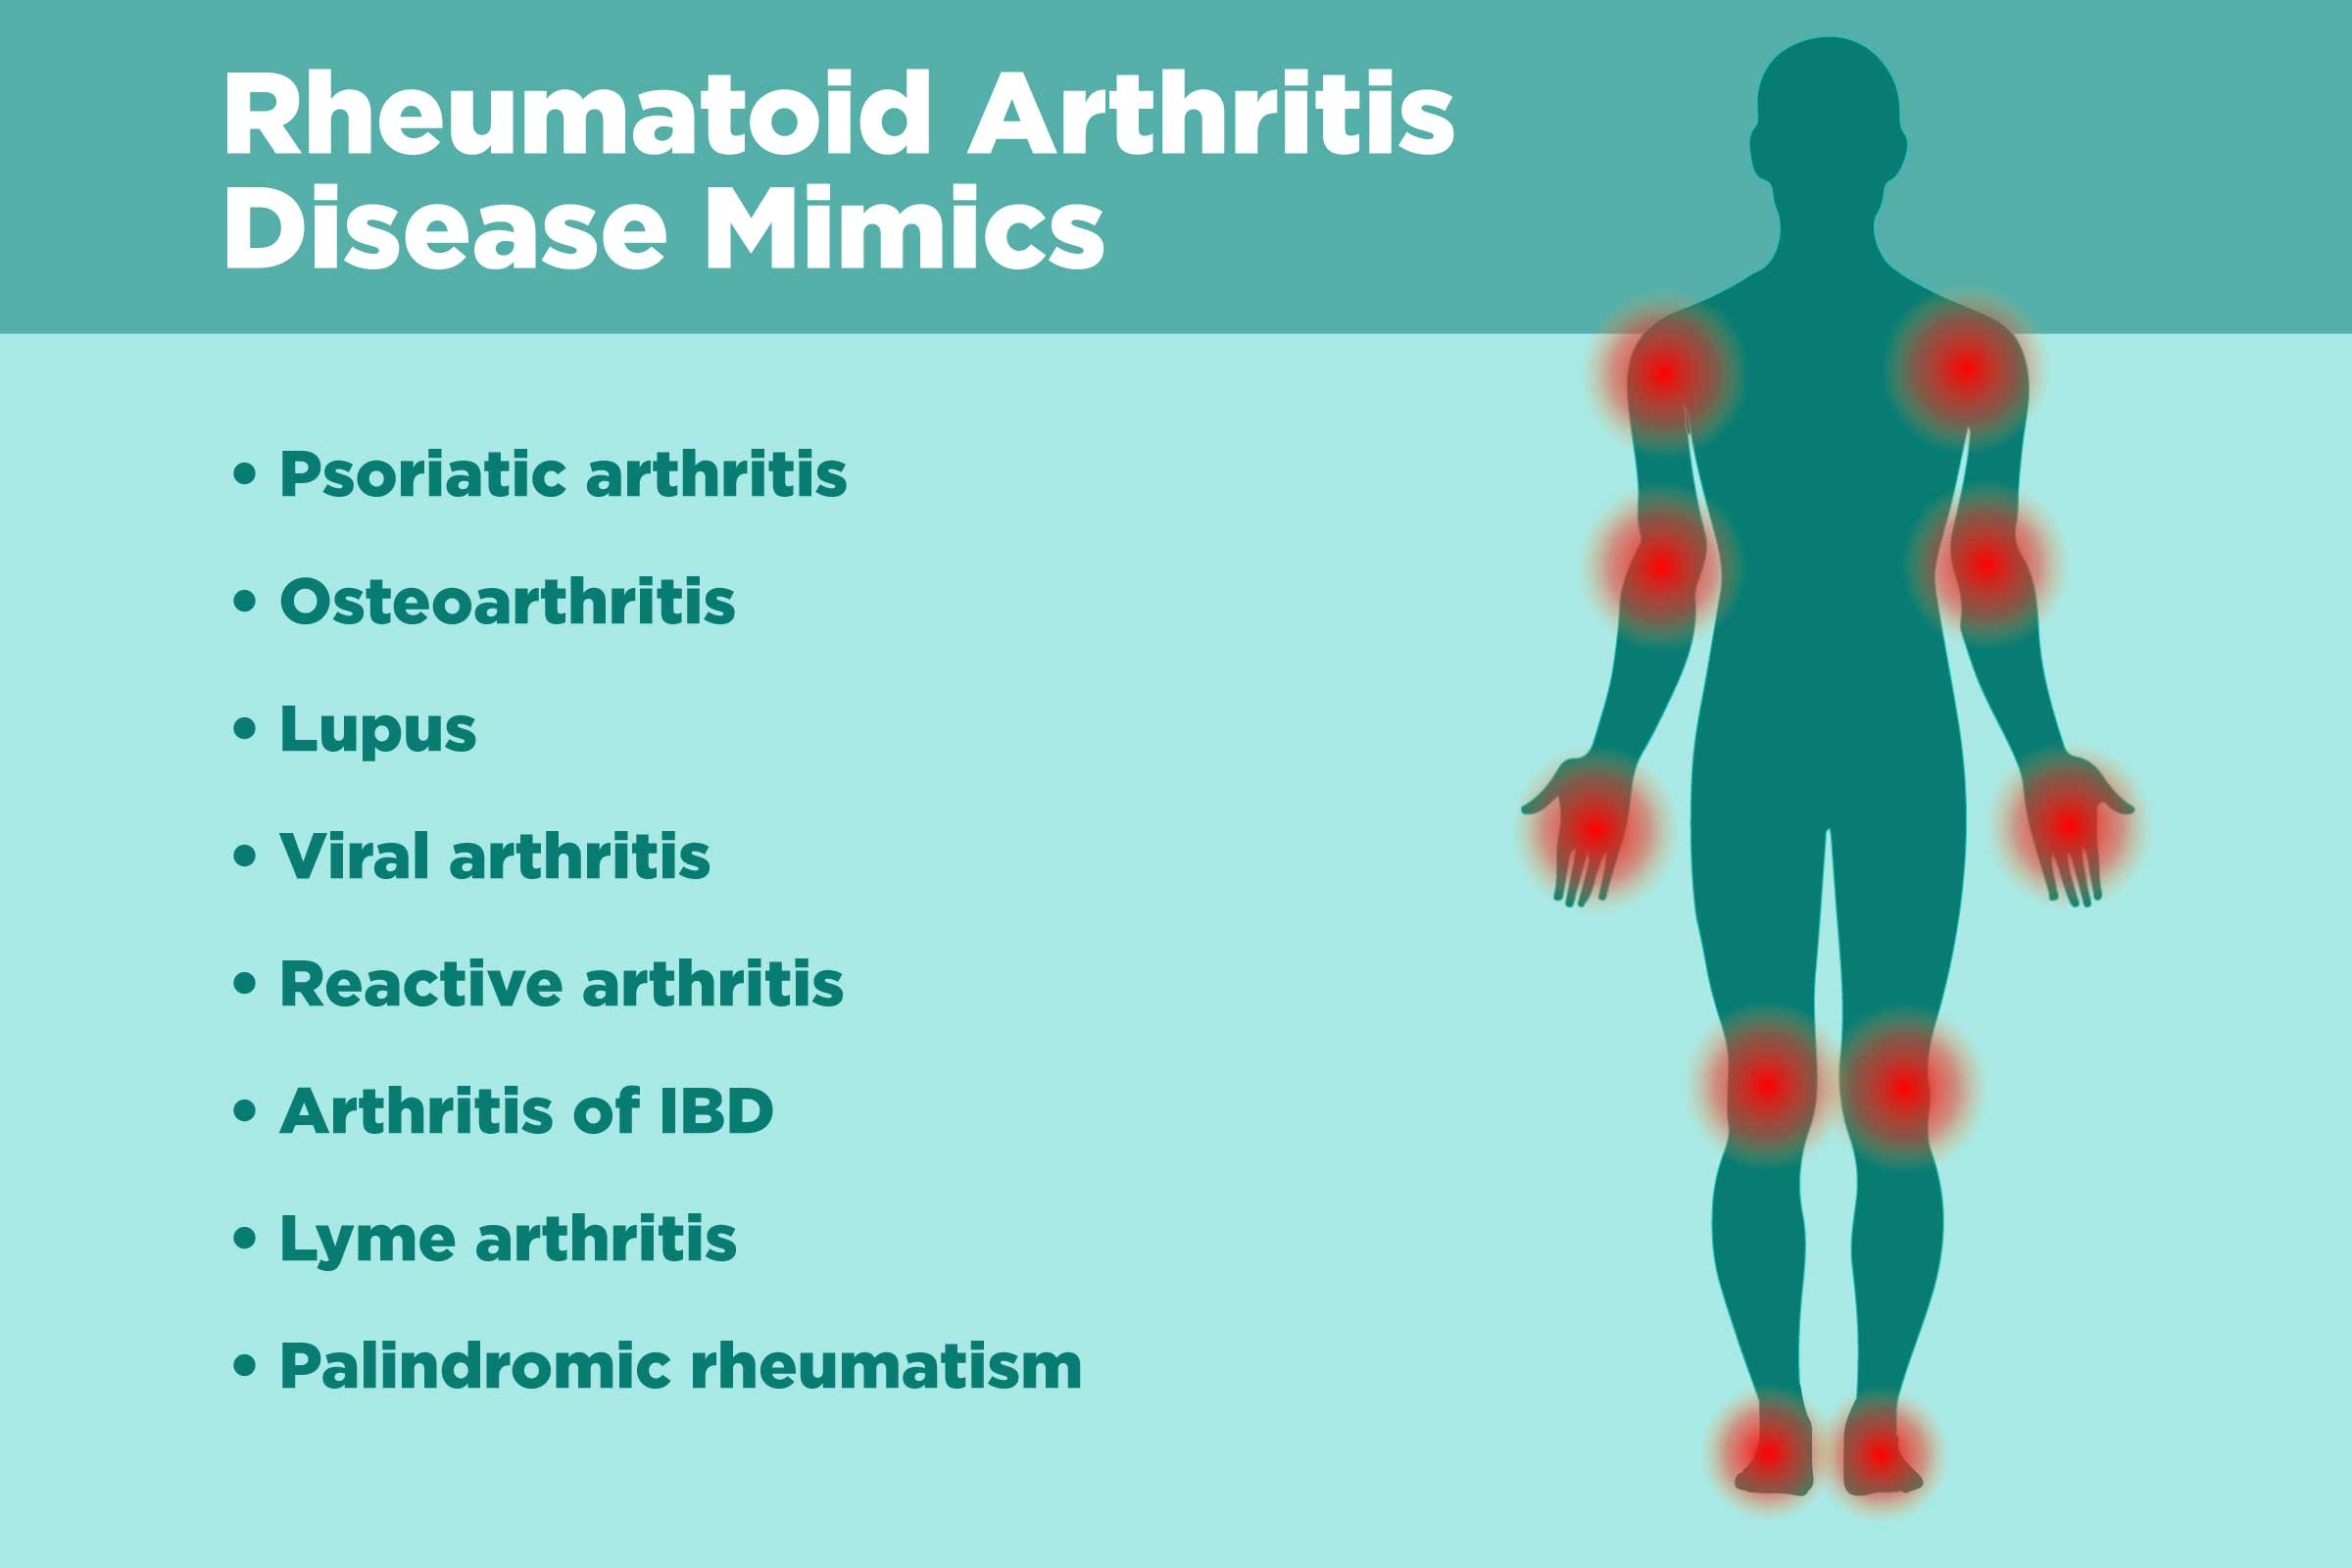 Diseases That Rheumatoid Arthritis Can Be Mistaken For